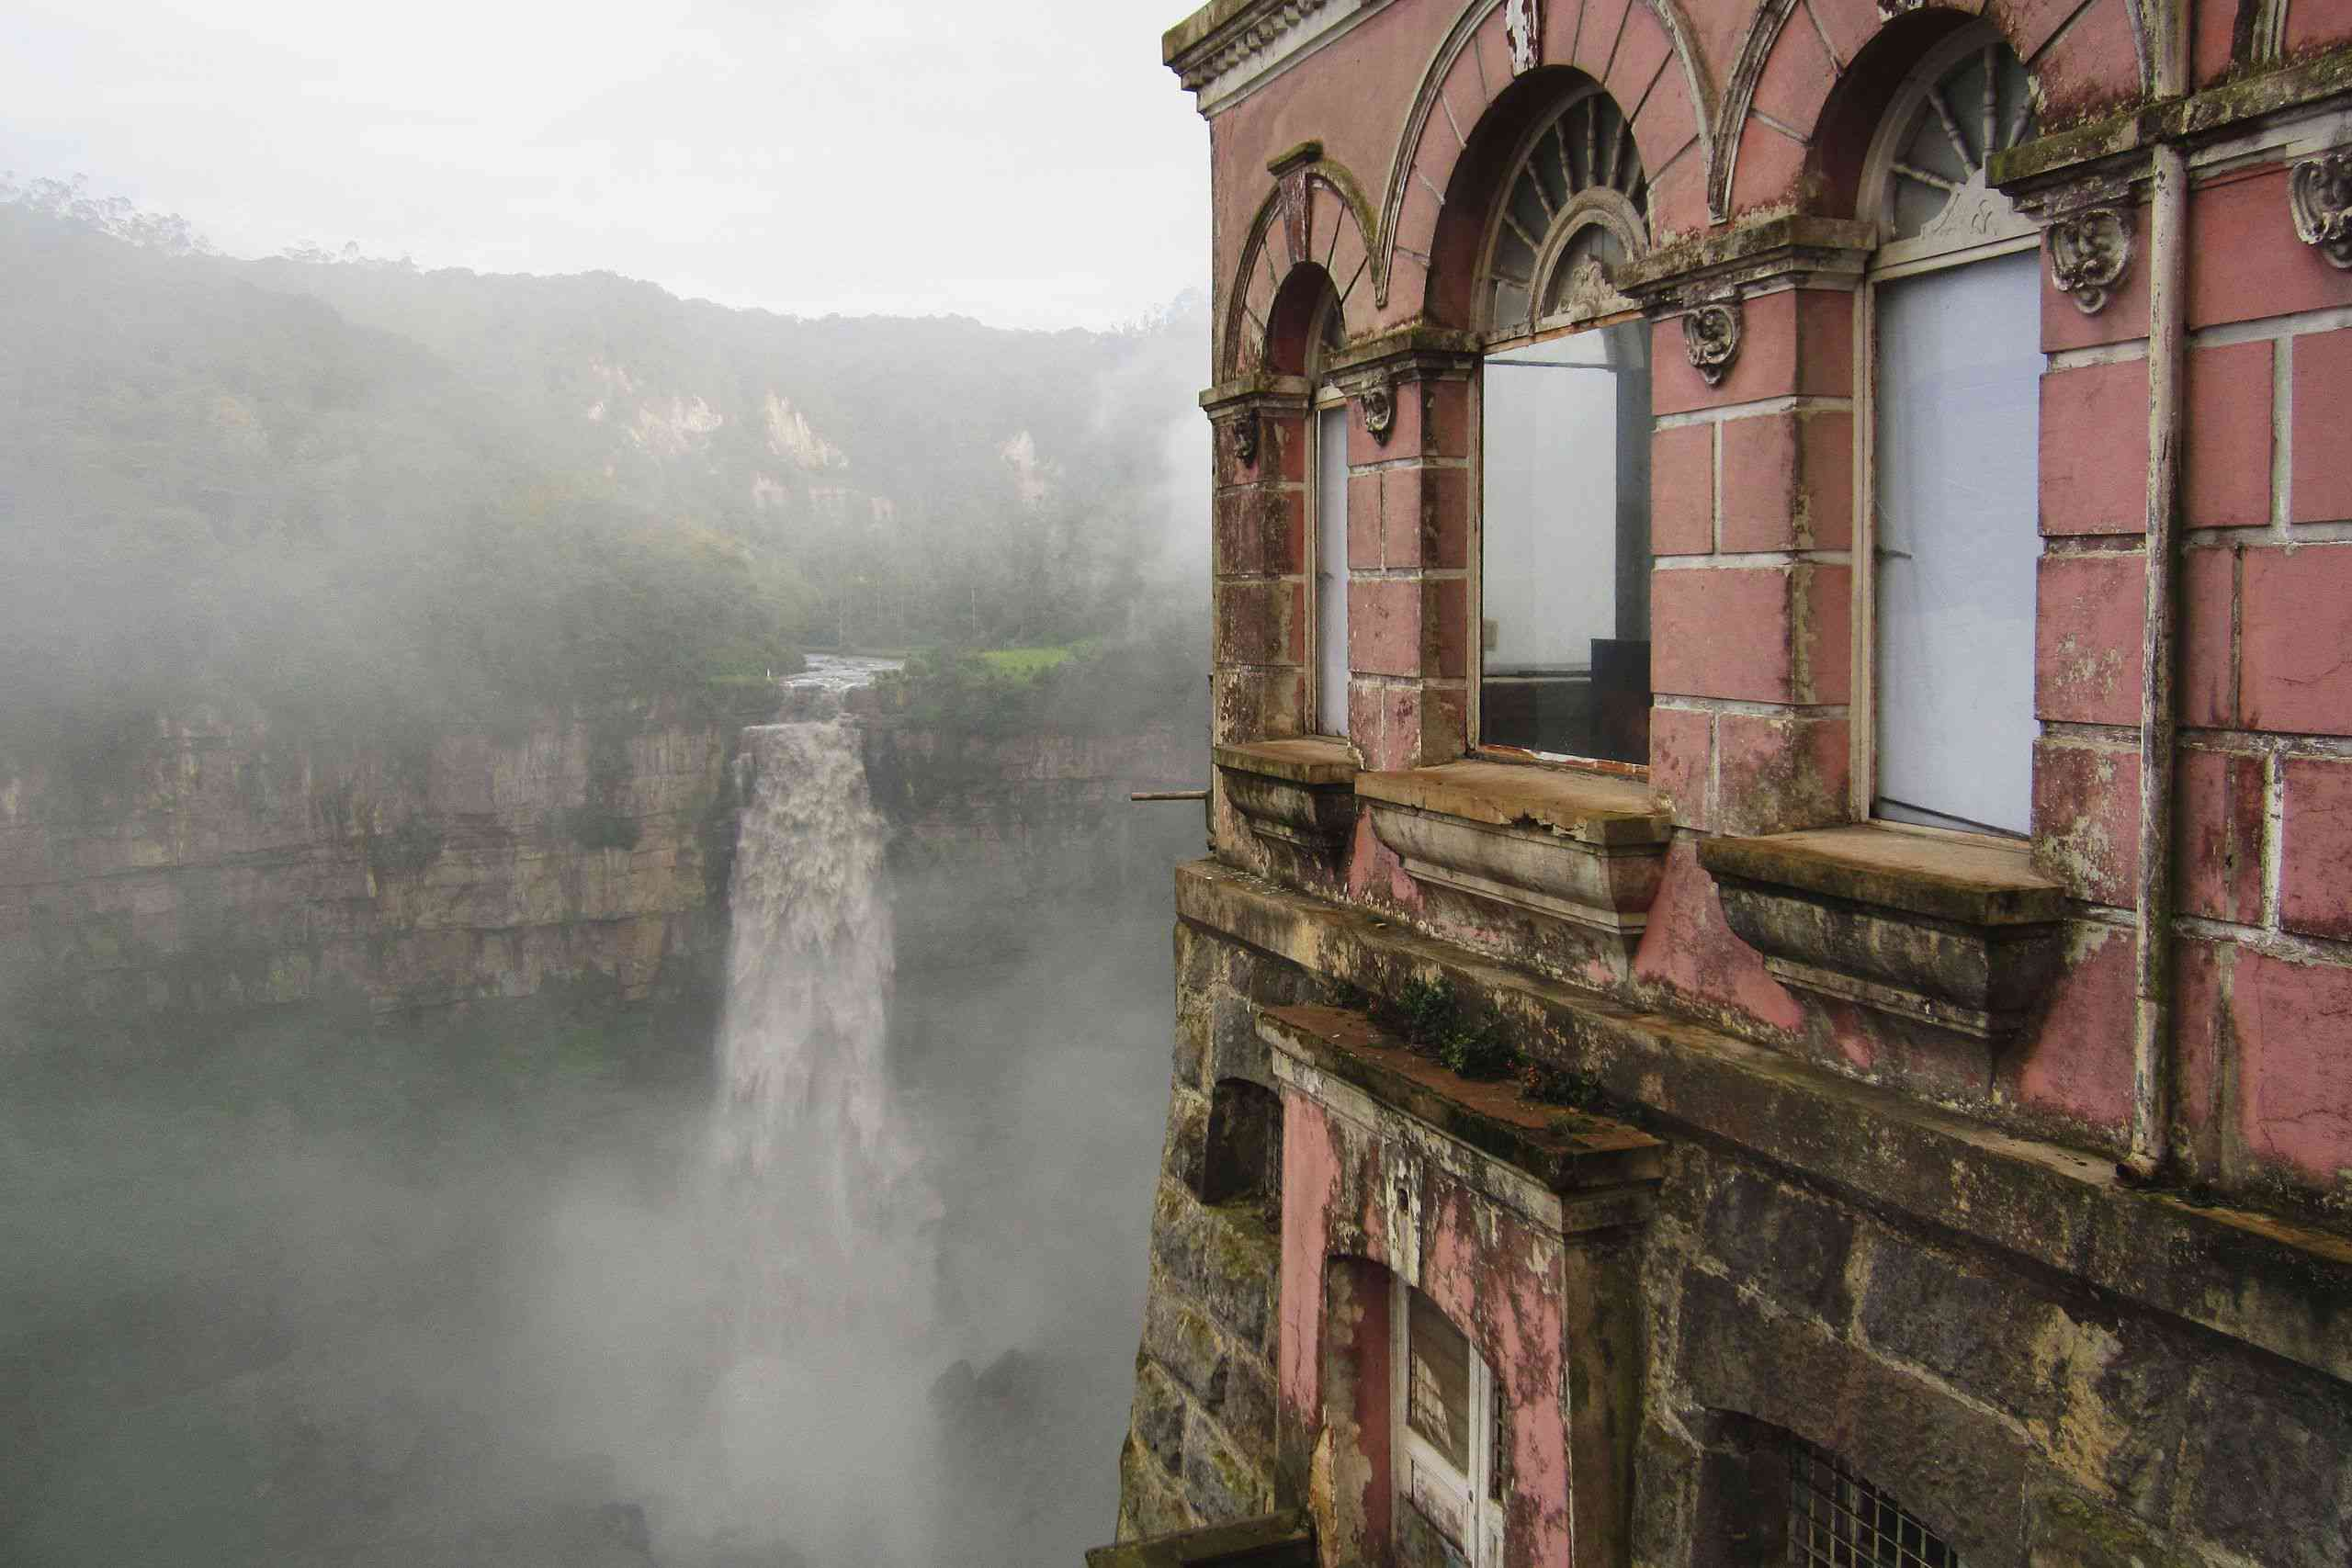 Tequendama Falls with Hotel de Salto in the foreground